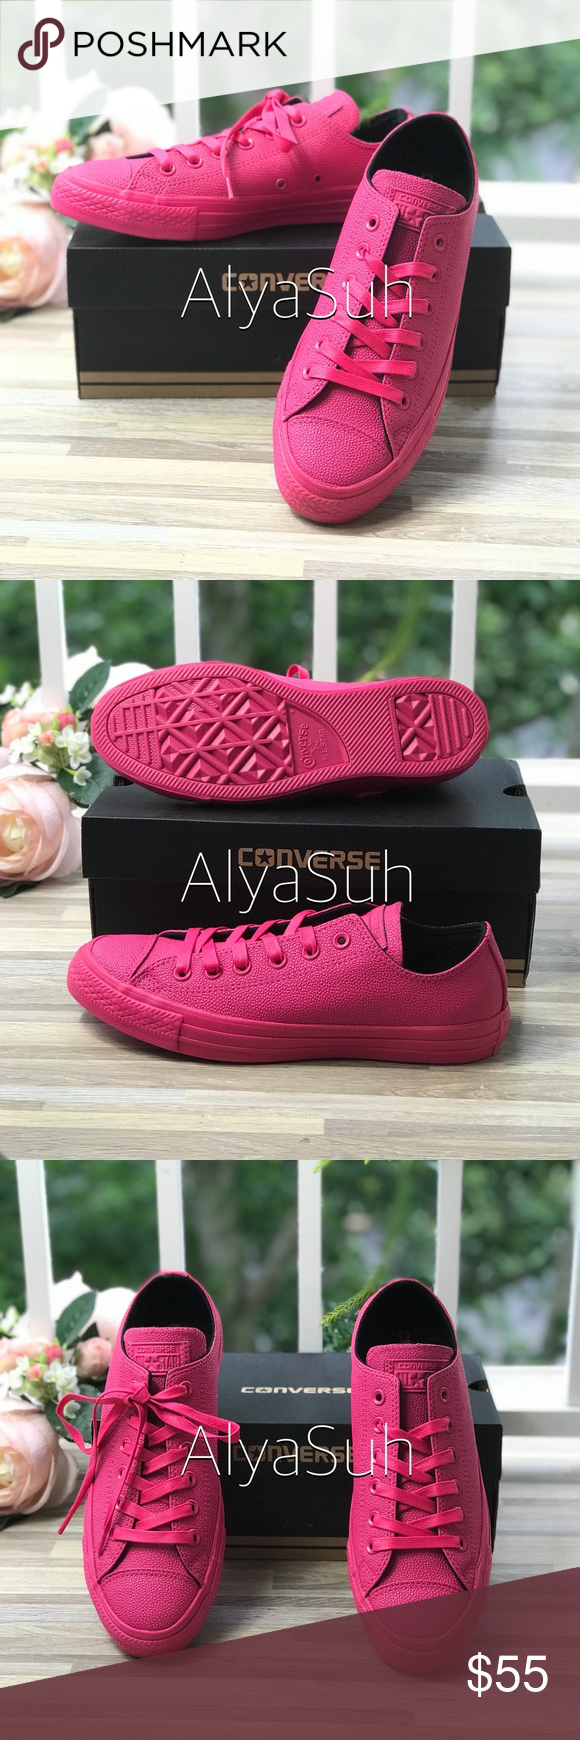 40b8895b7d1fcf NWT Converse Ctas OX Vivid Pink WMNS AUTHENTIC Brand new with box. Price is